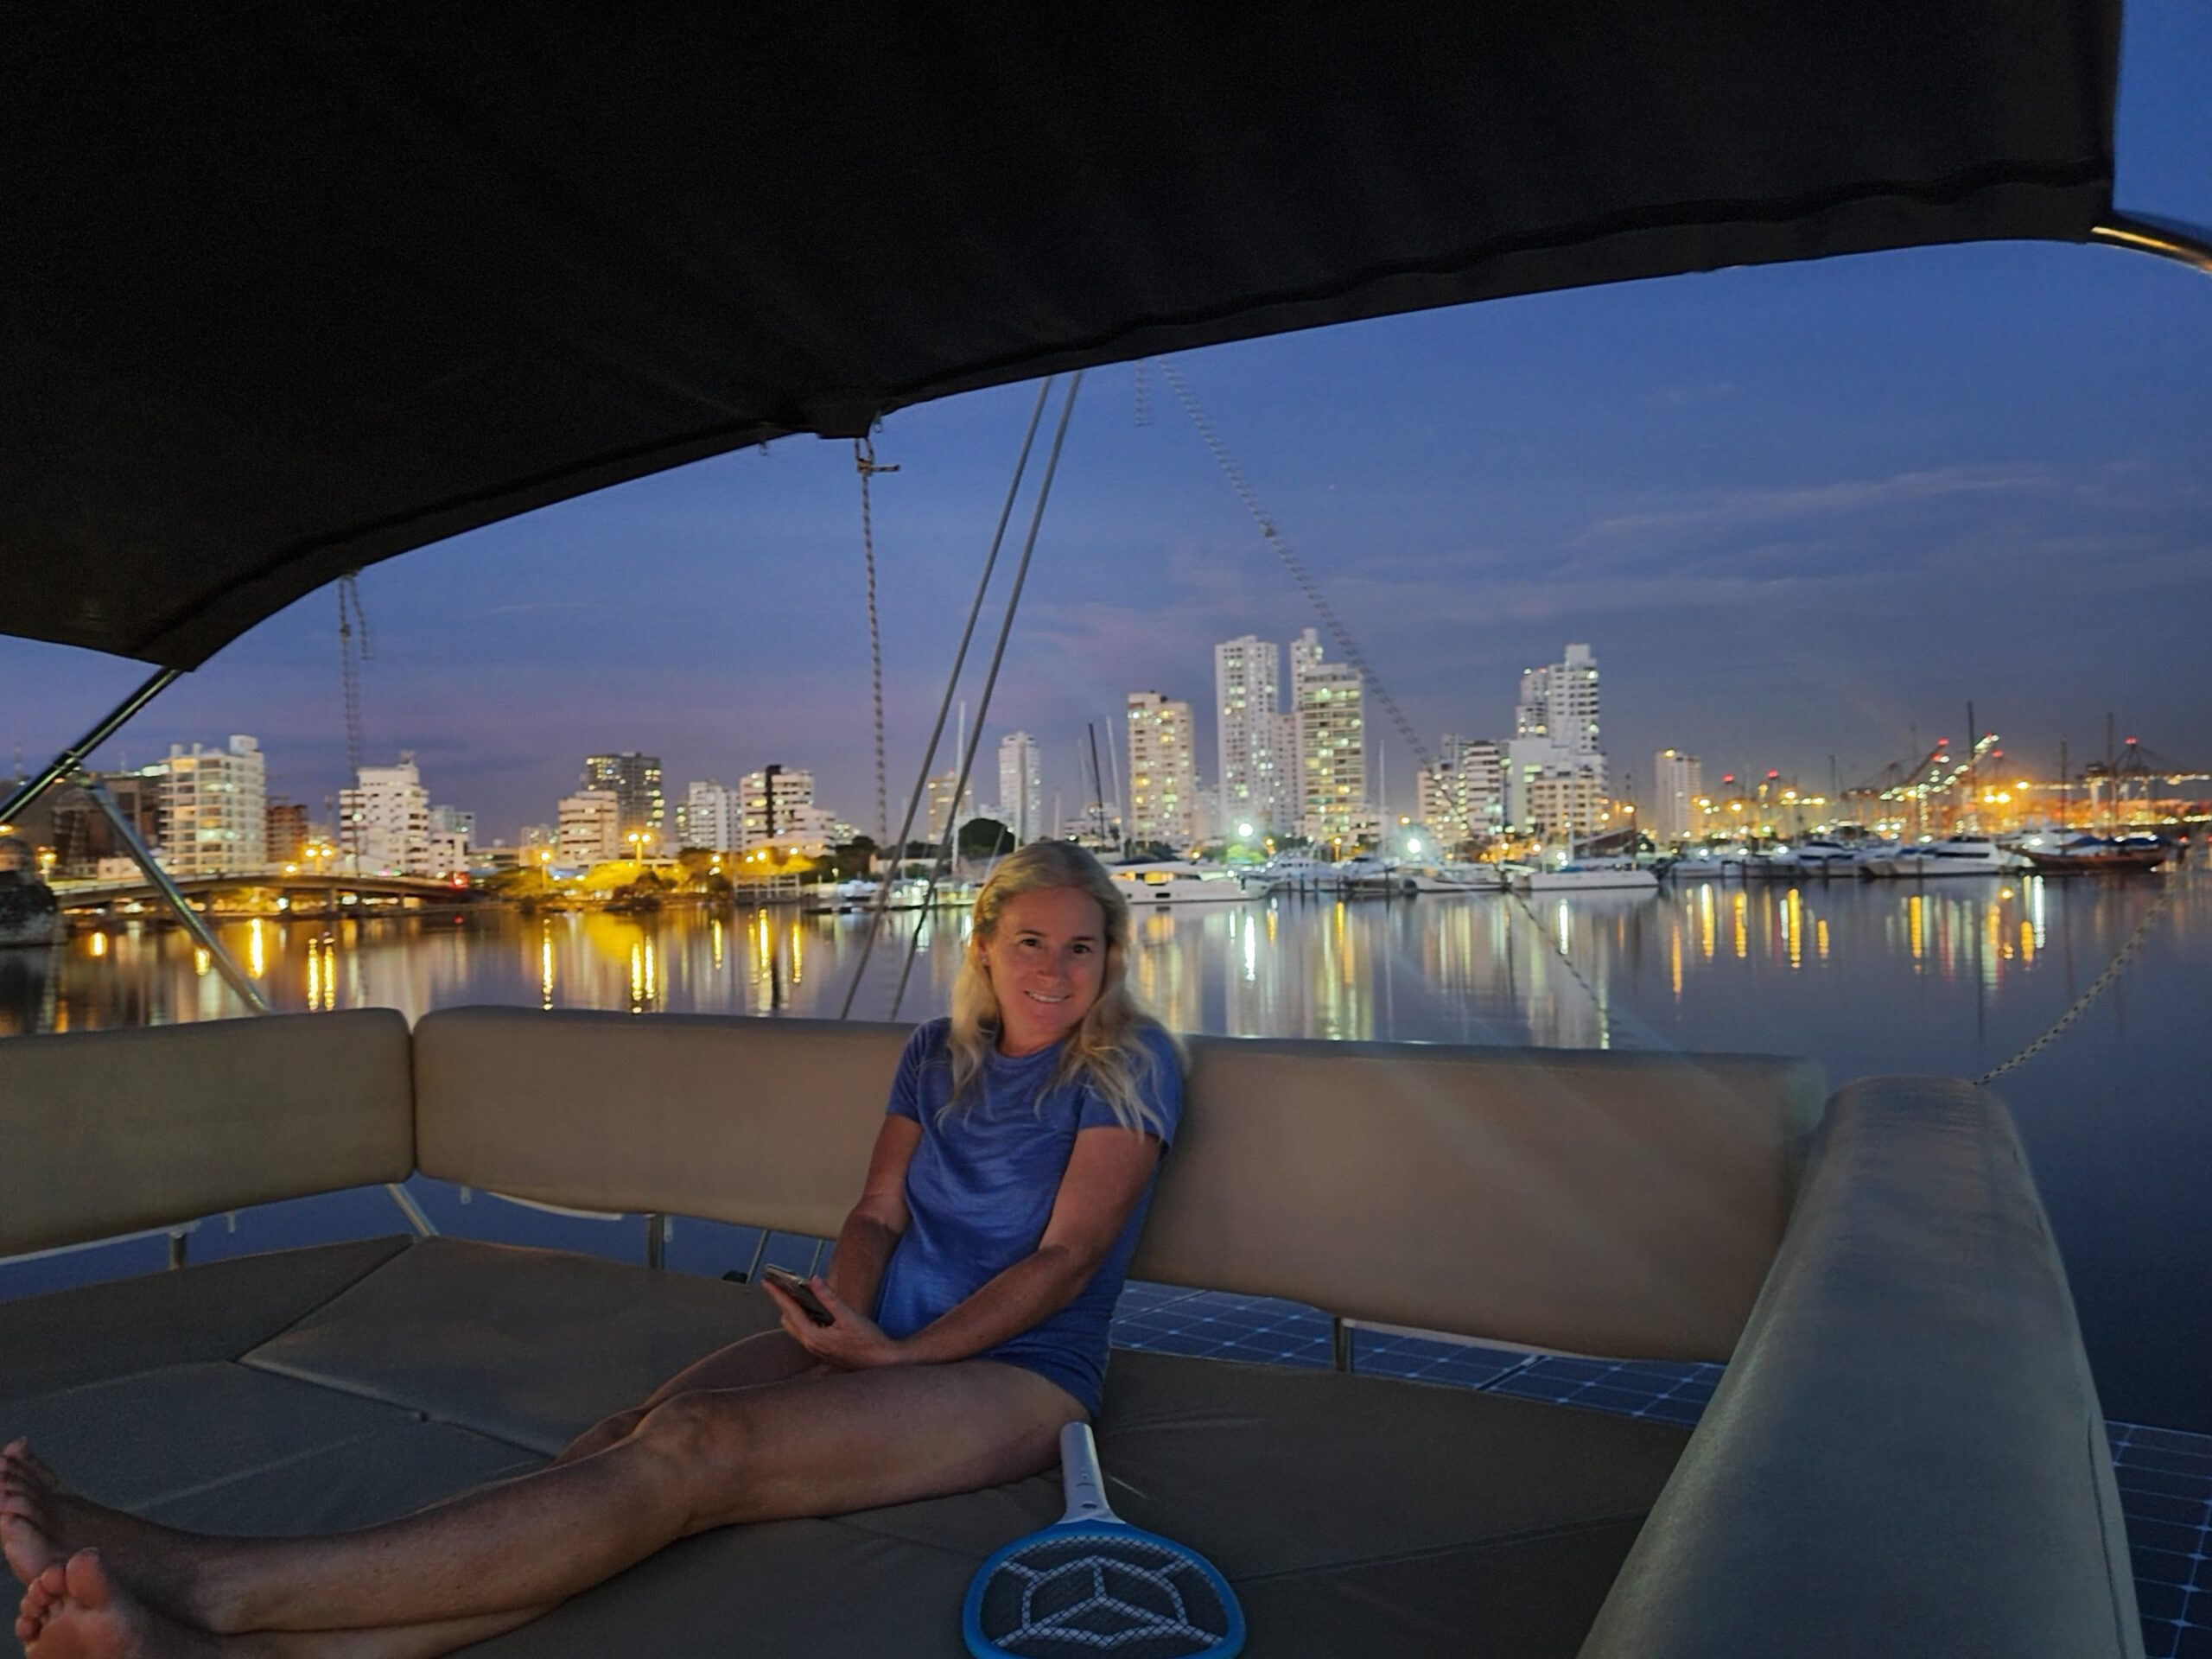 Enyoing the flybridge at night with only 30 degrees celsius